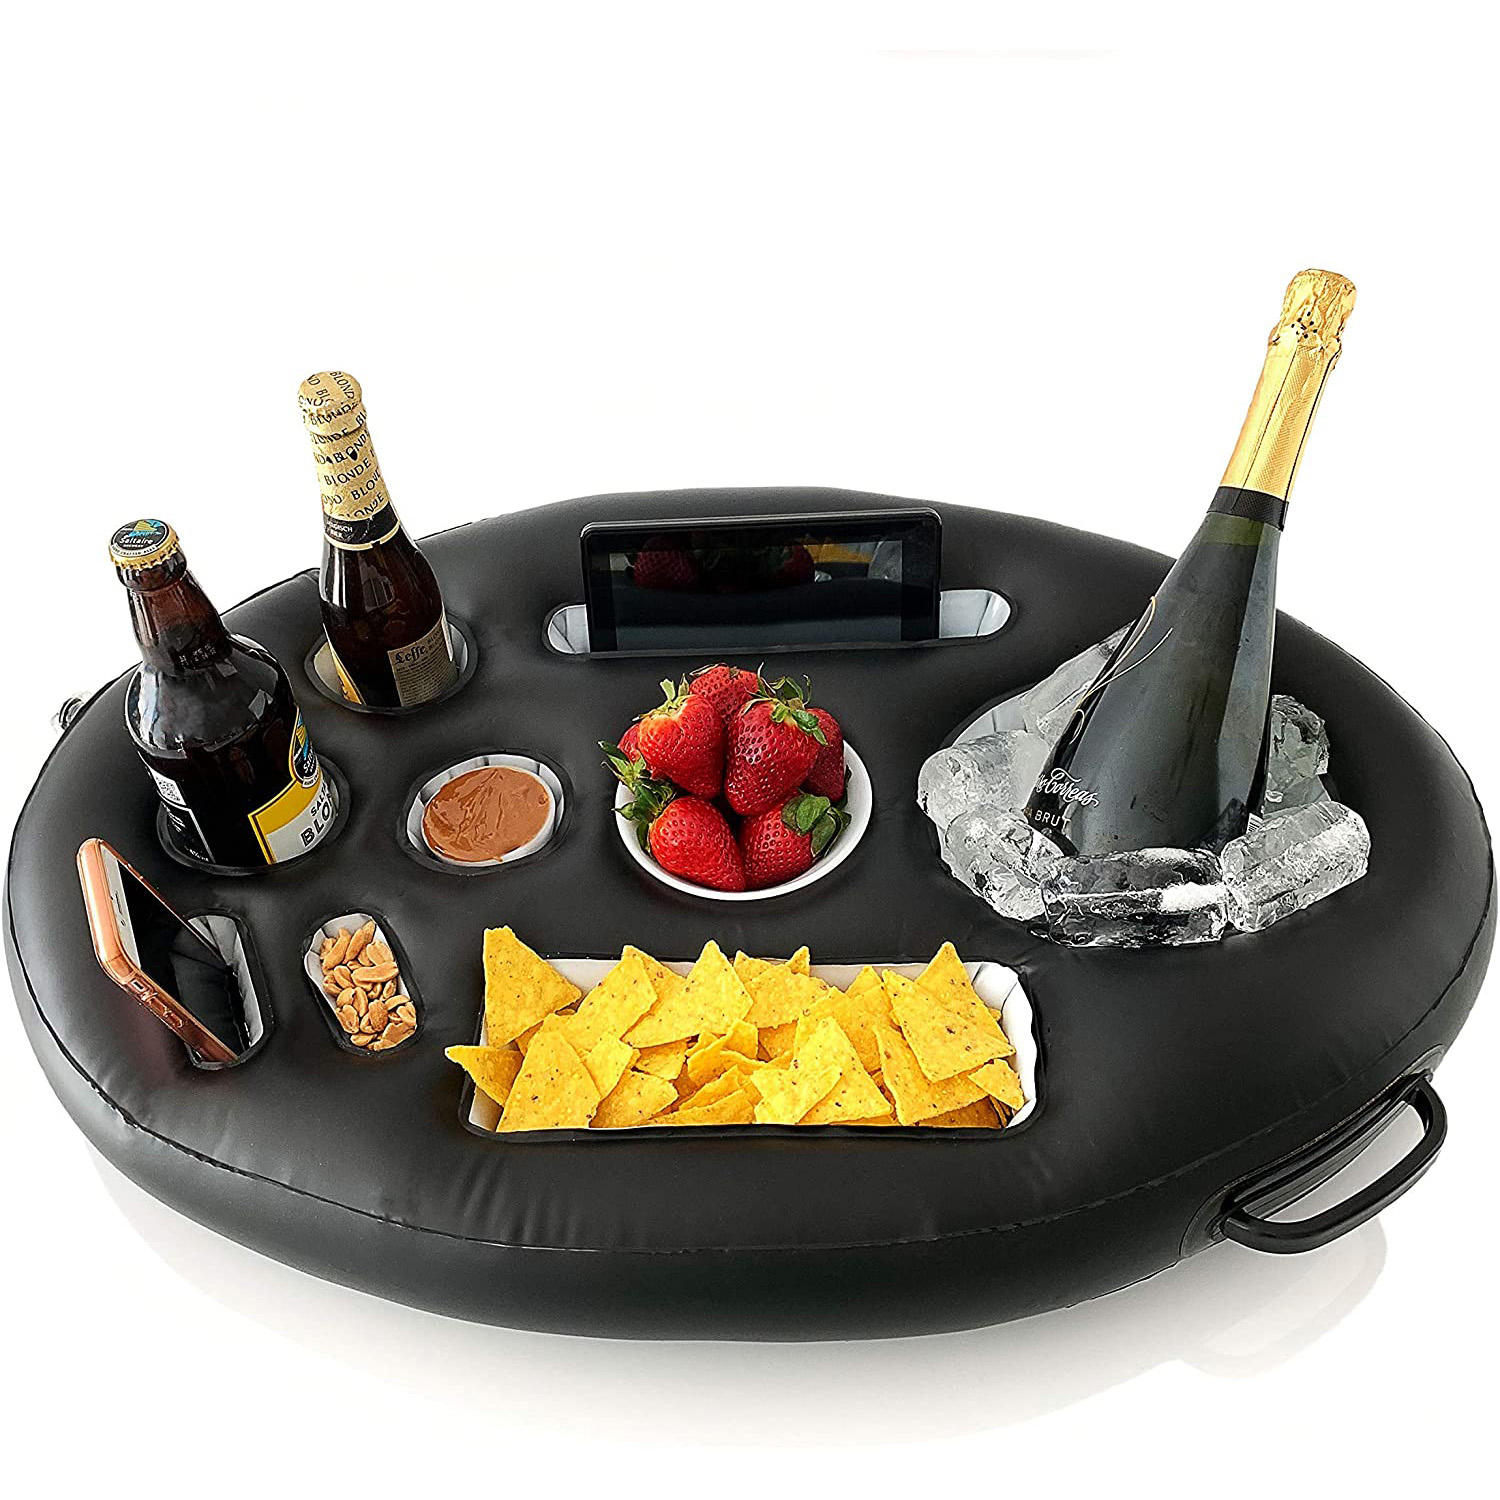 Premium Floating Drink Holder Beach & Outdoor Cup Holder Fun, Versatile & Portable Serving Bar